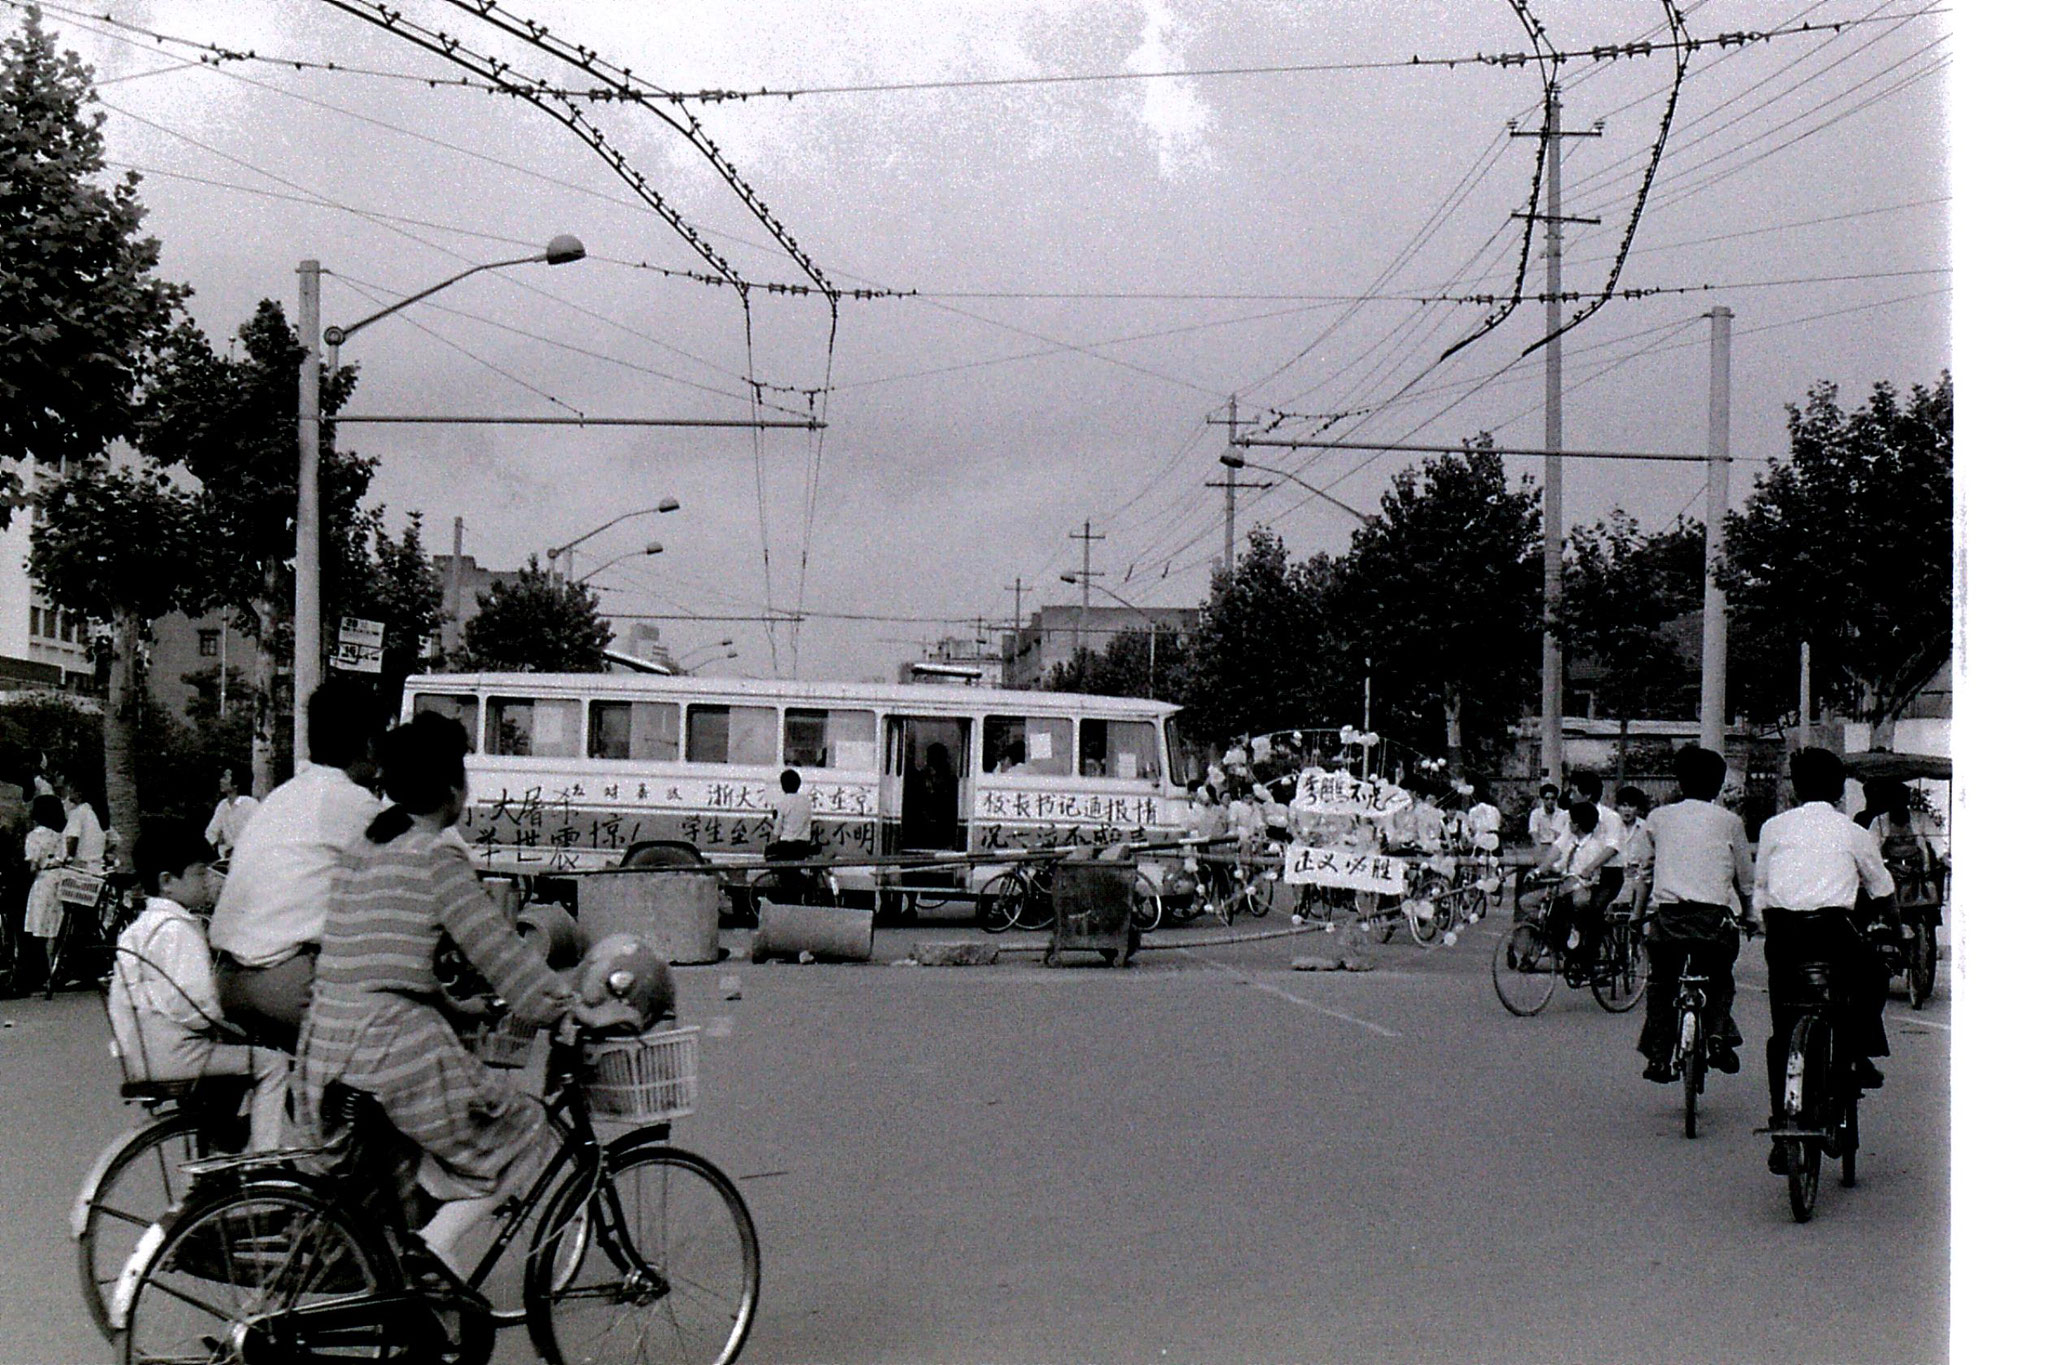 6/6/1989: 33: demonstrations around Hangzhou